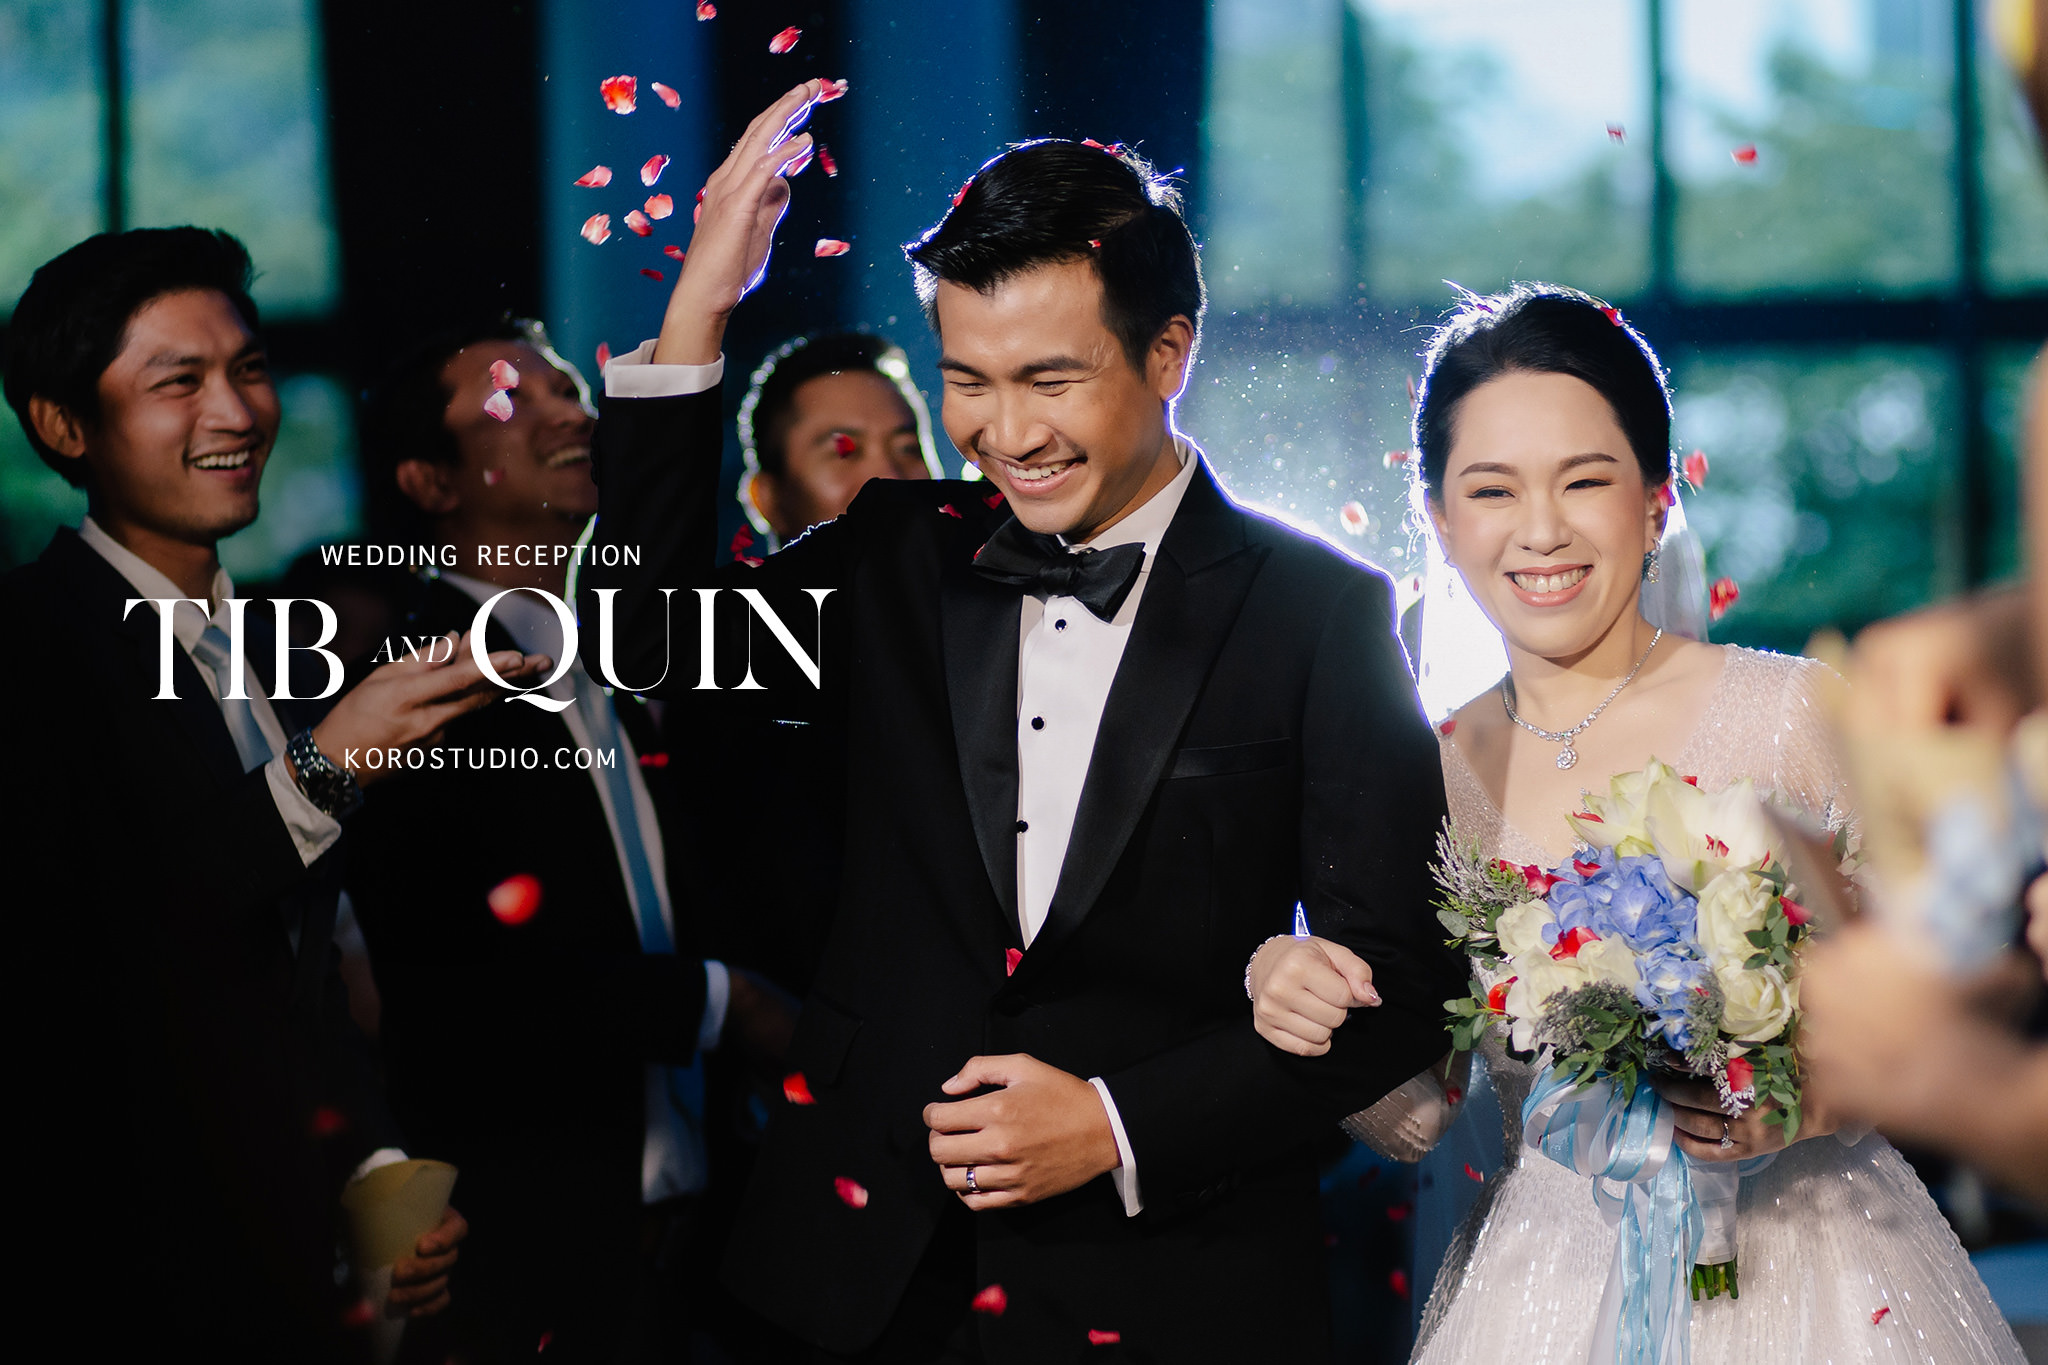 the athenee hotel wedding reception cover The Athenee Hotel Bangkok Wedding Reception Tib and Quin